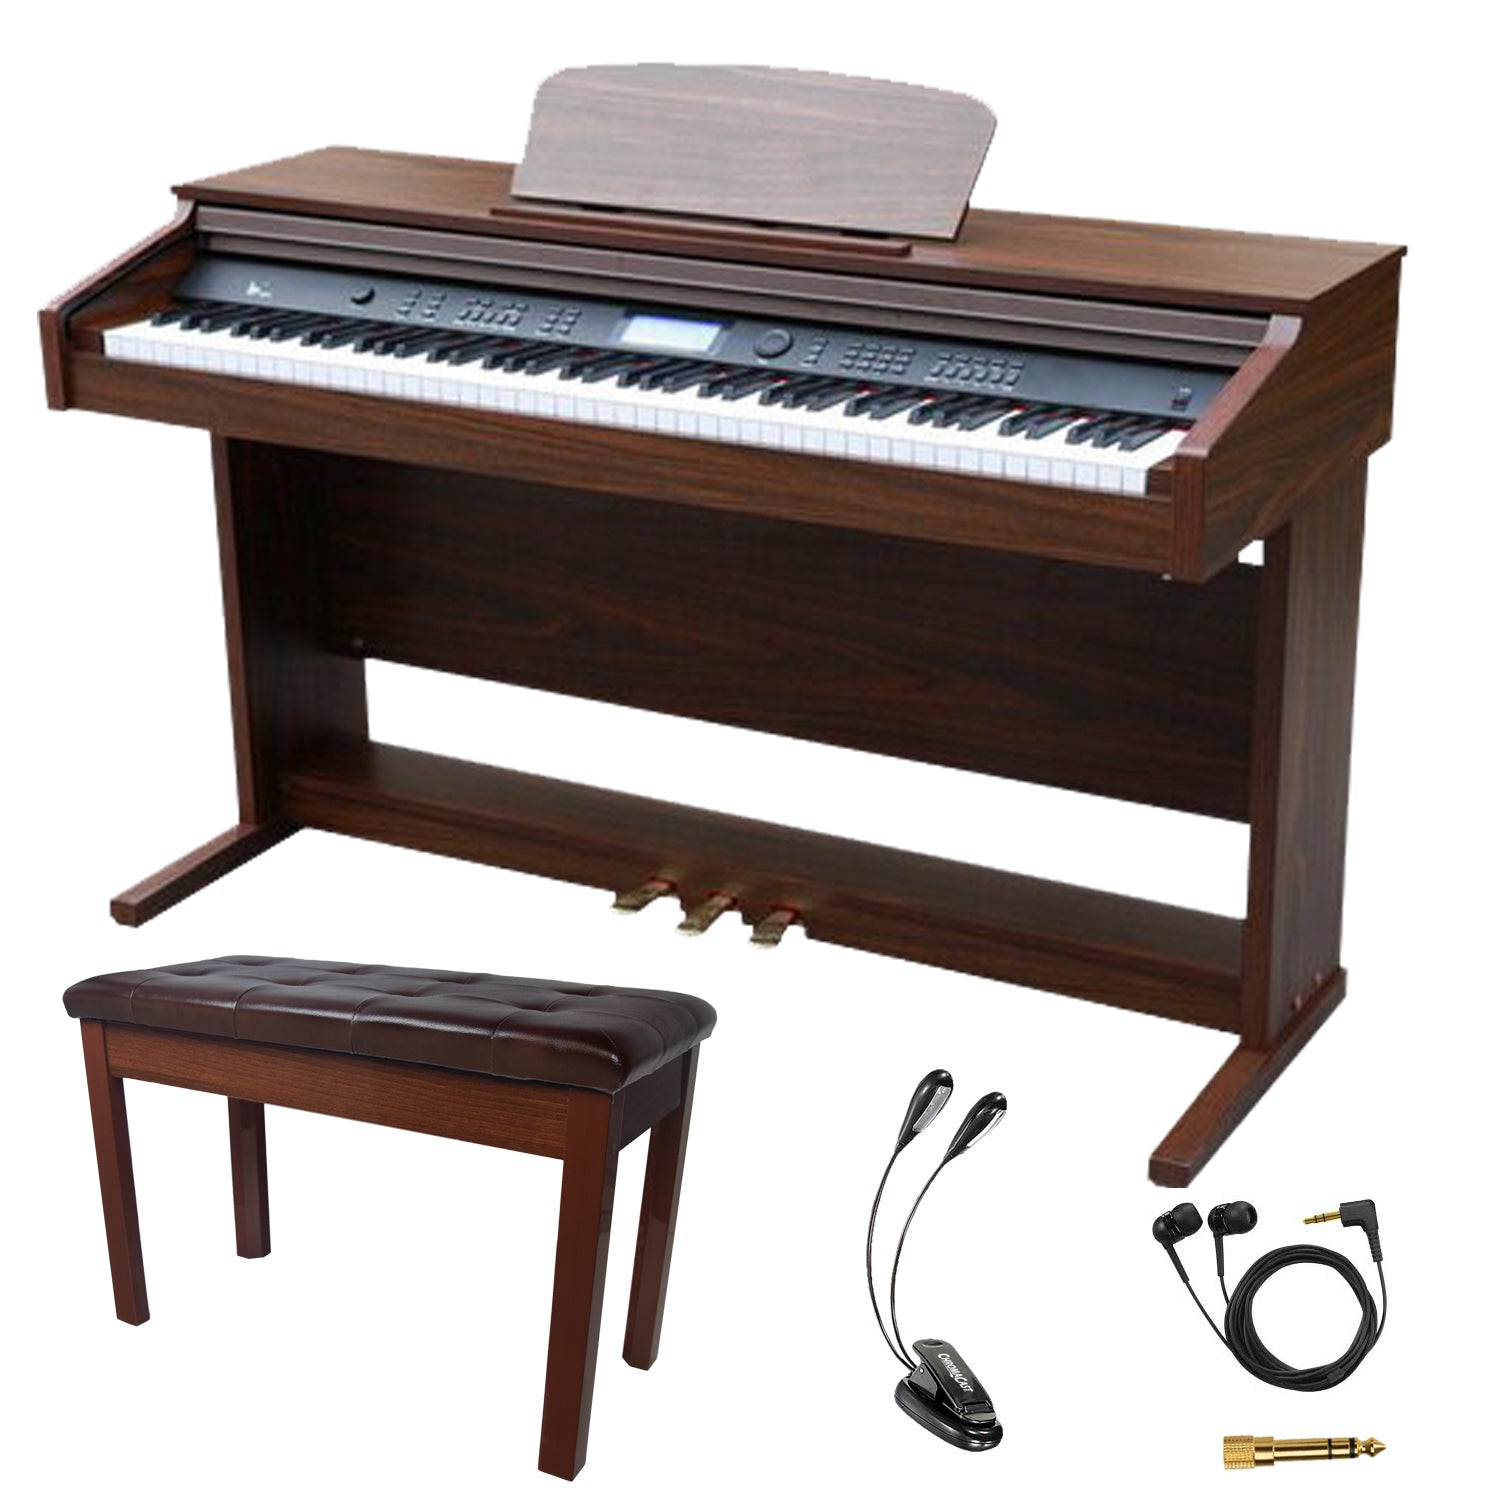 sawtooth 88 key digital console piano with weighted keys and accessori godpsmusic. Black Bedroom Furniture Sets. Home Design Ideas